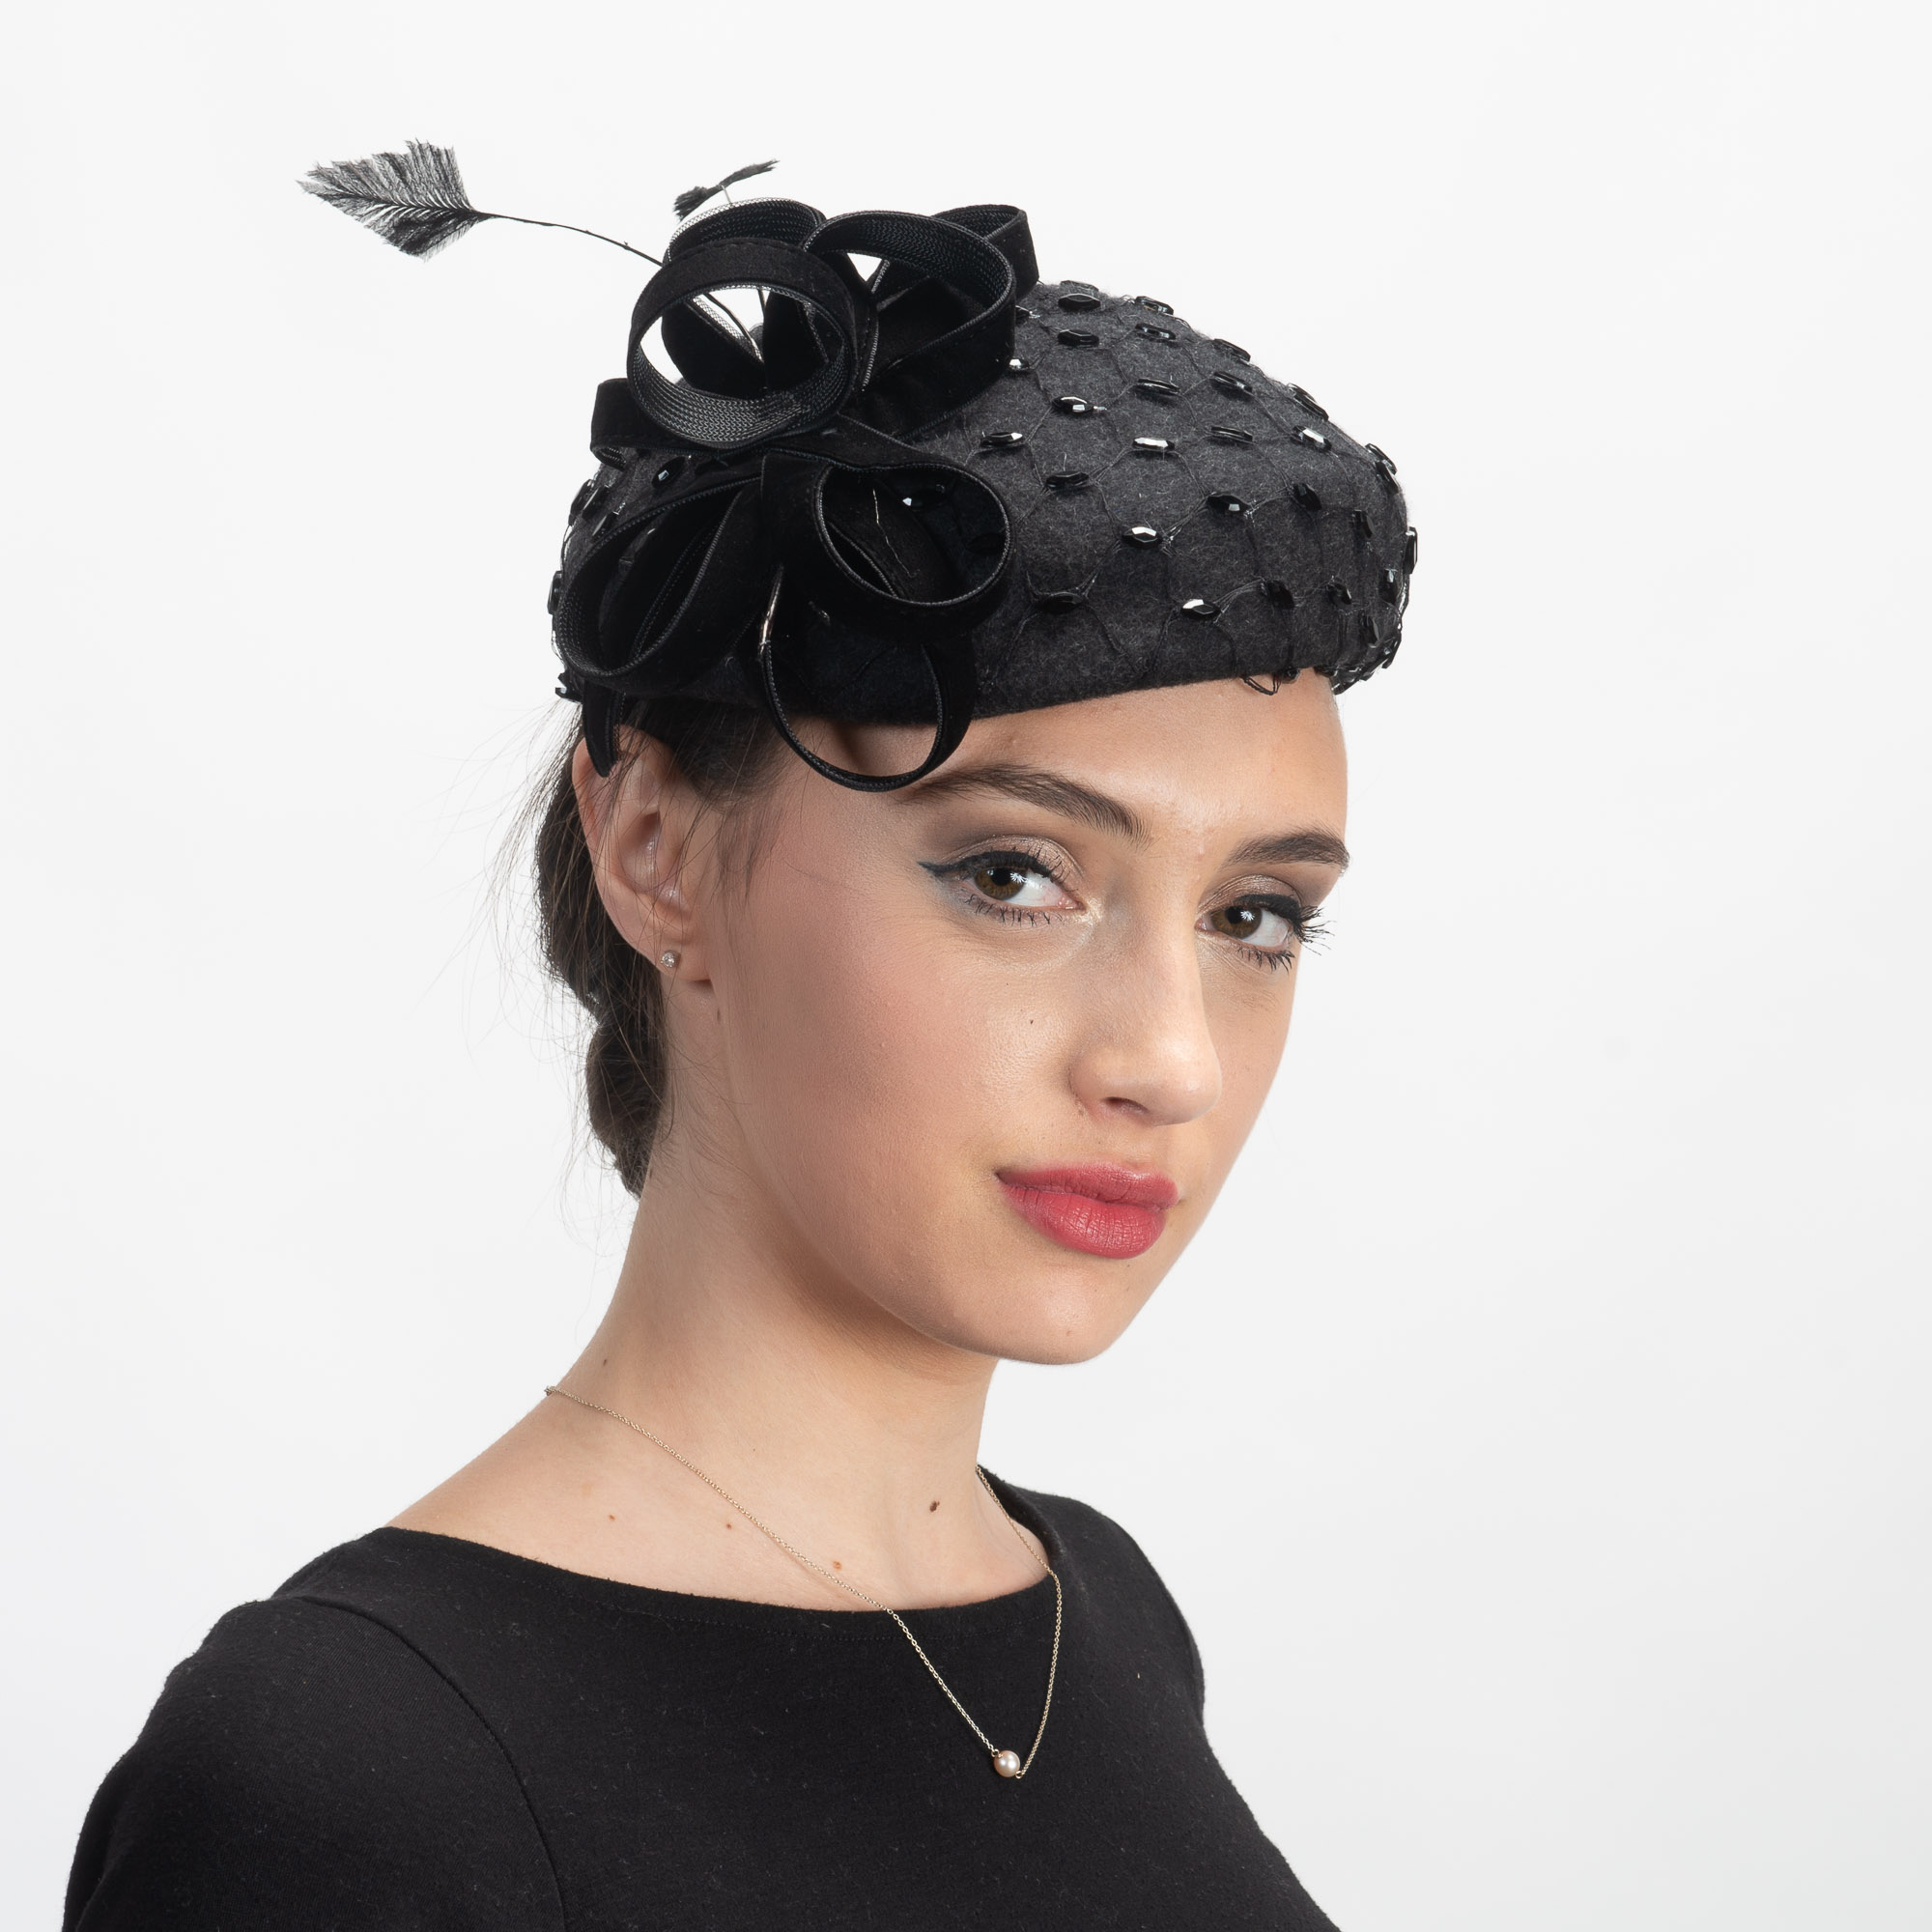 f168ad17fa386 Pillbox Hat With Veil Black - Hat Images and Descriptions ...